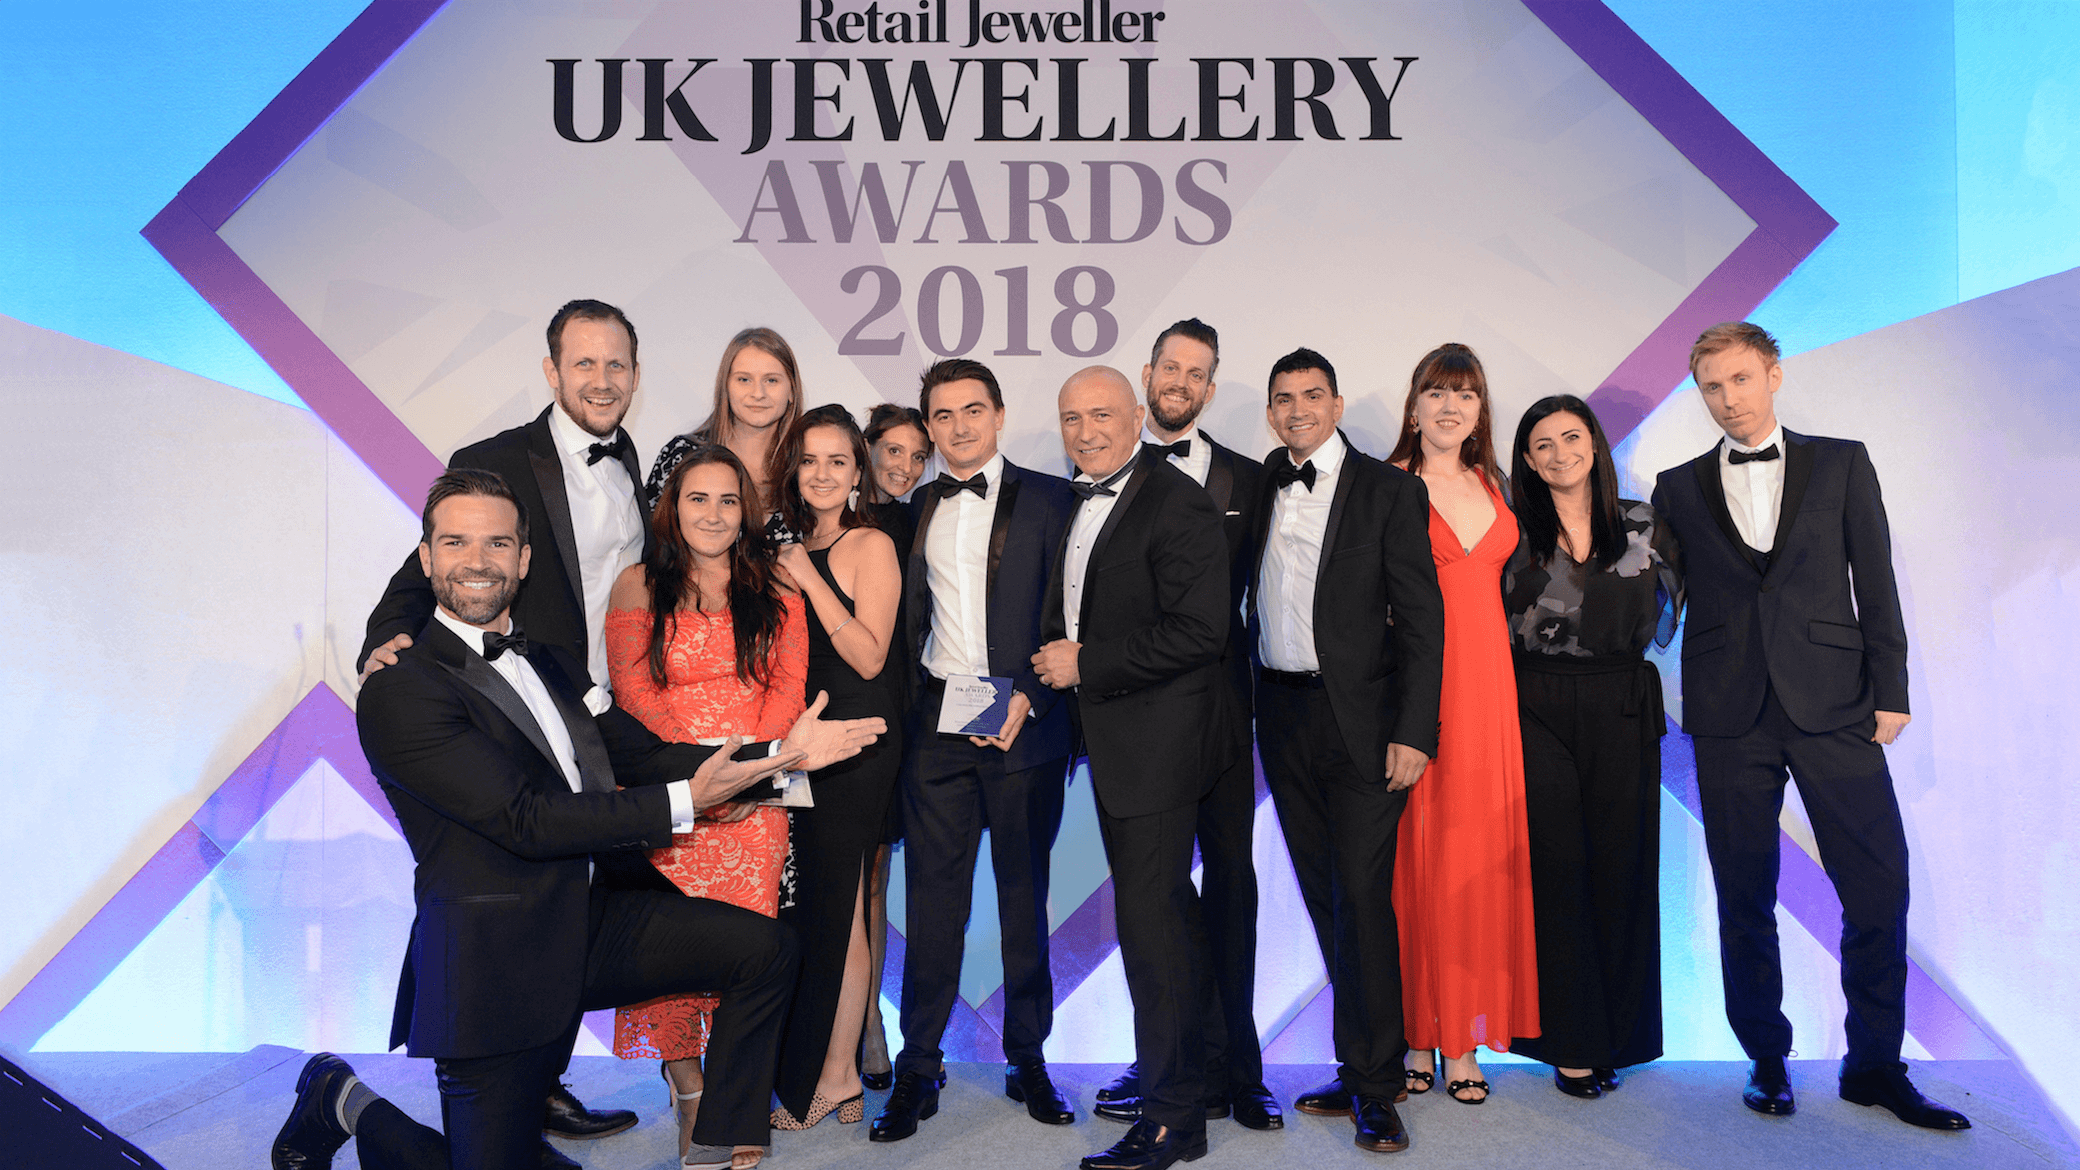 UK-retail-jeweller-jewellery-awards-2018-bridal-jeweller-of-the-year-uk-best-bridal-jeweller-hatton-garden-london-engagement-rings-wedding-bands-queensmith-master-jewellers